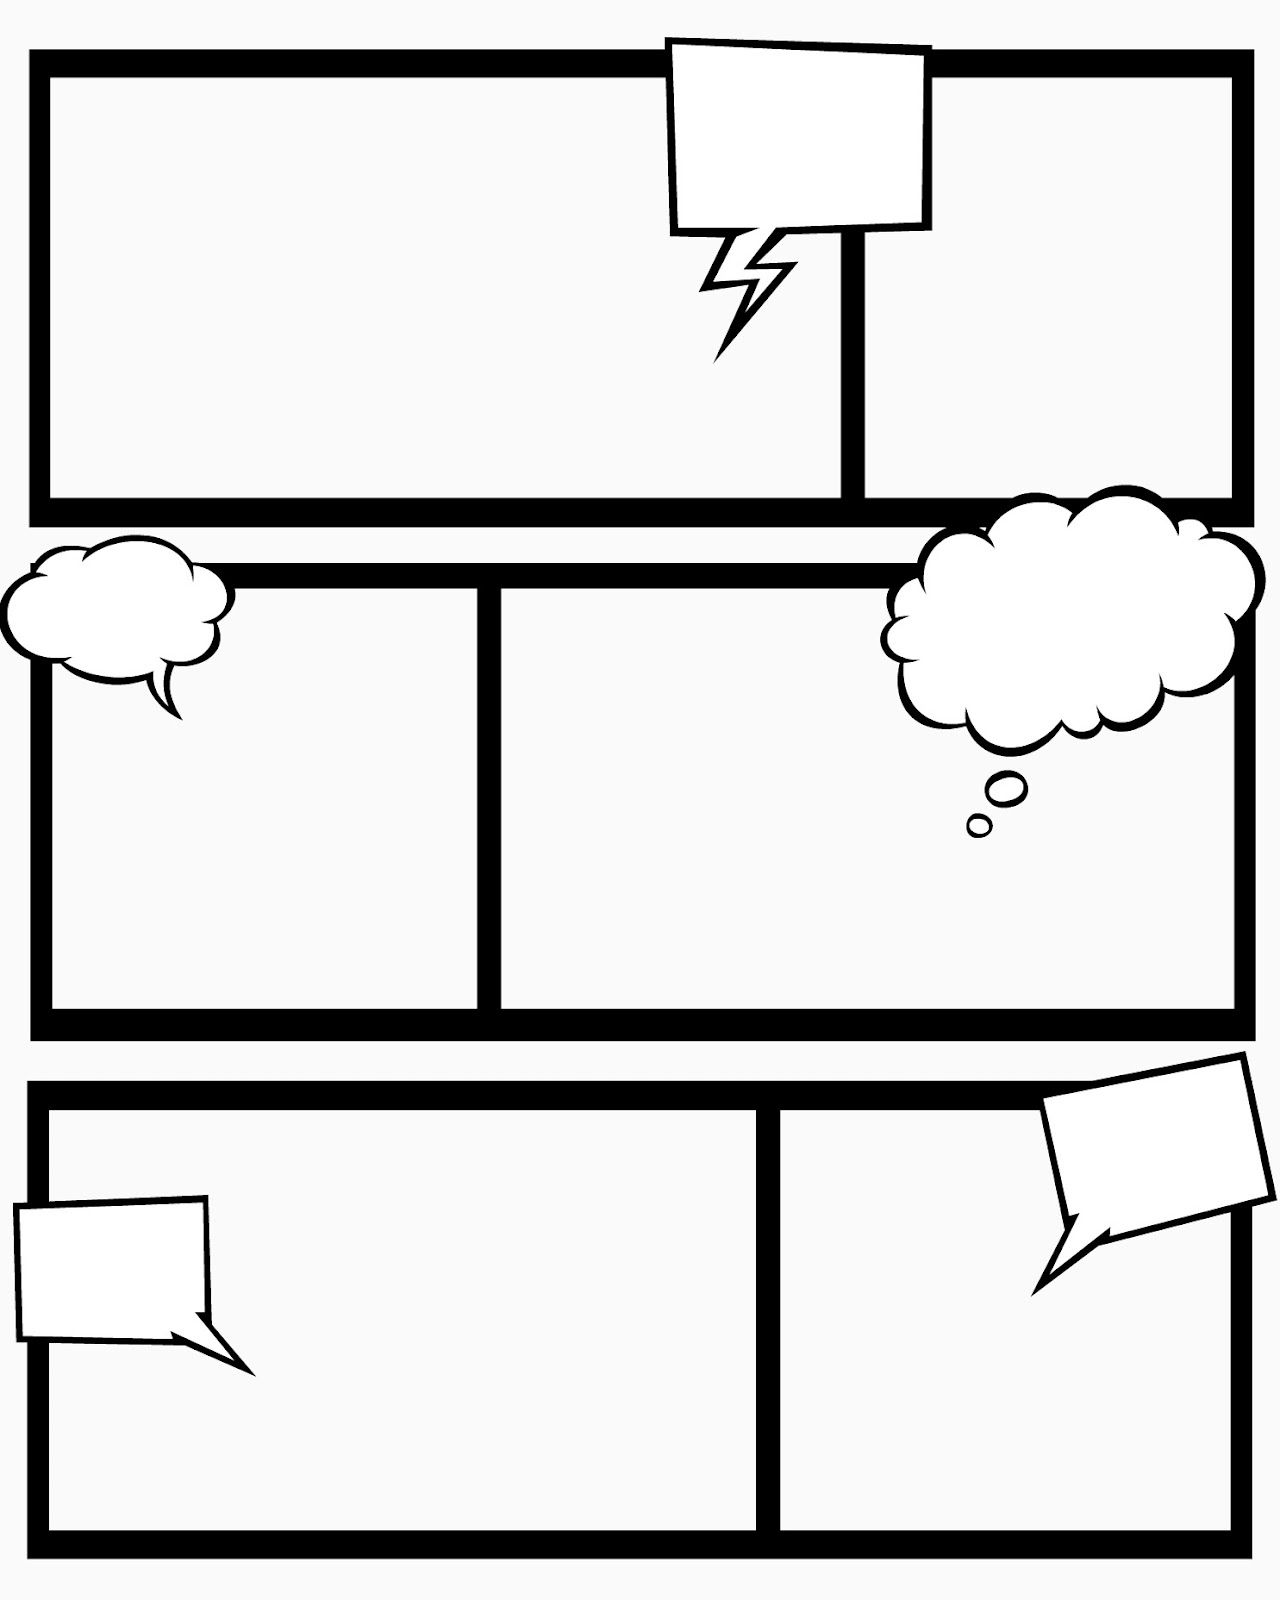 comic strip template online  Free Online Spanish Course | Comic book template, Comic ...